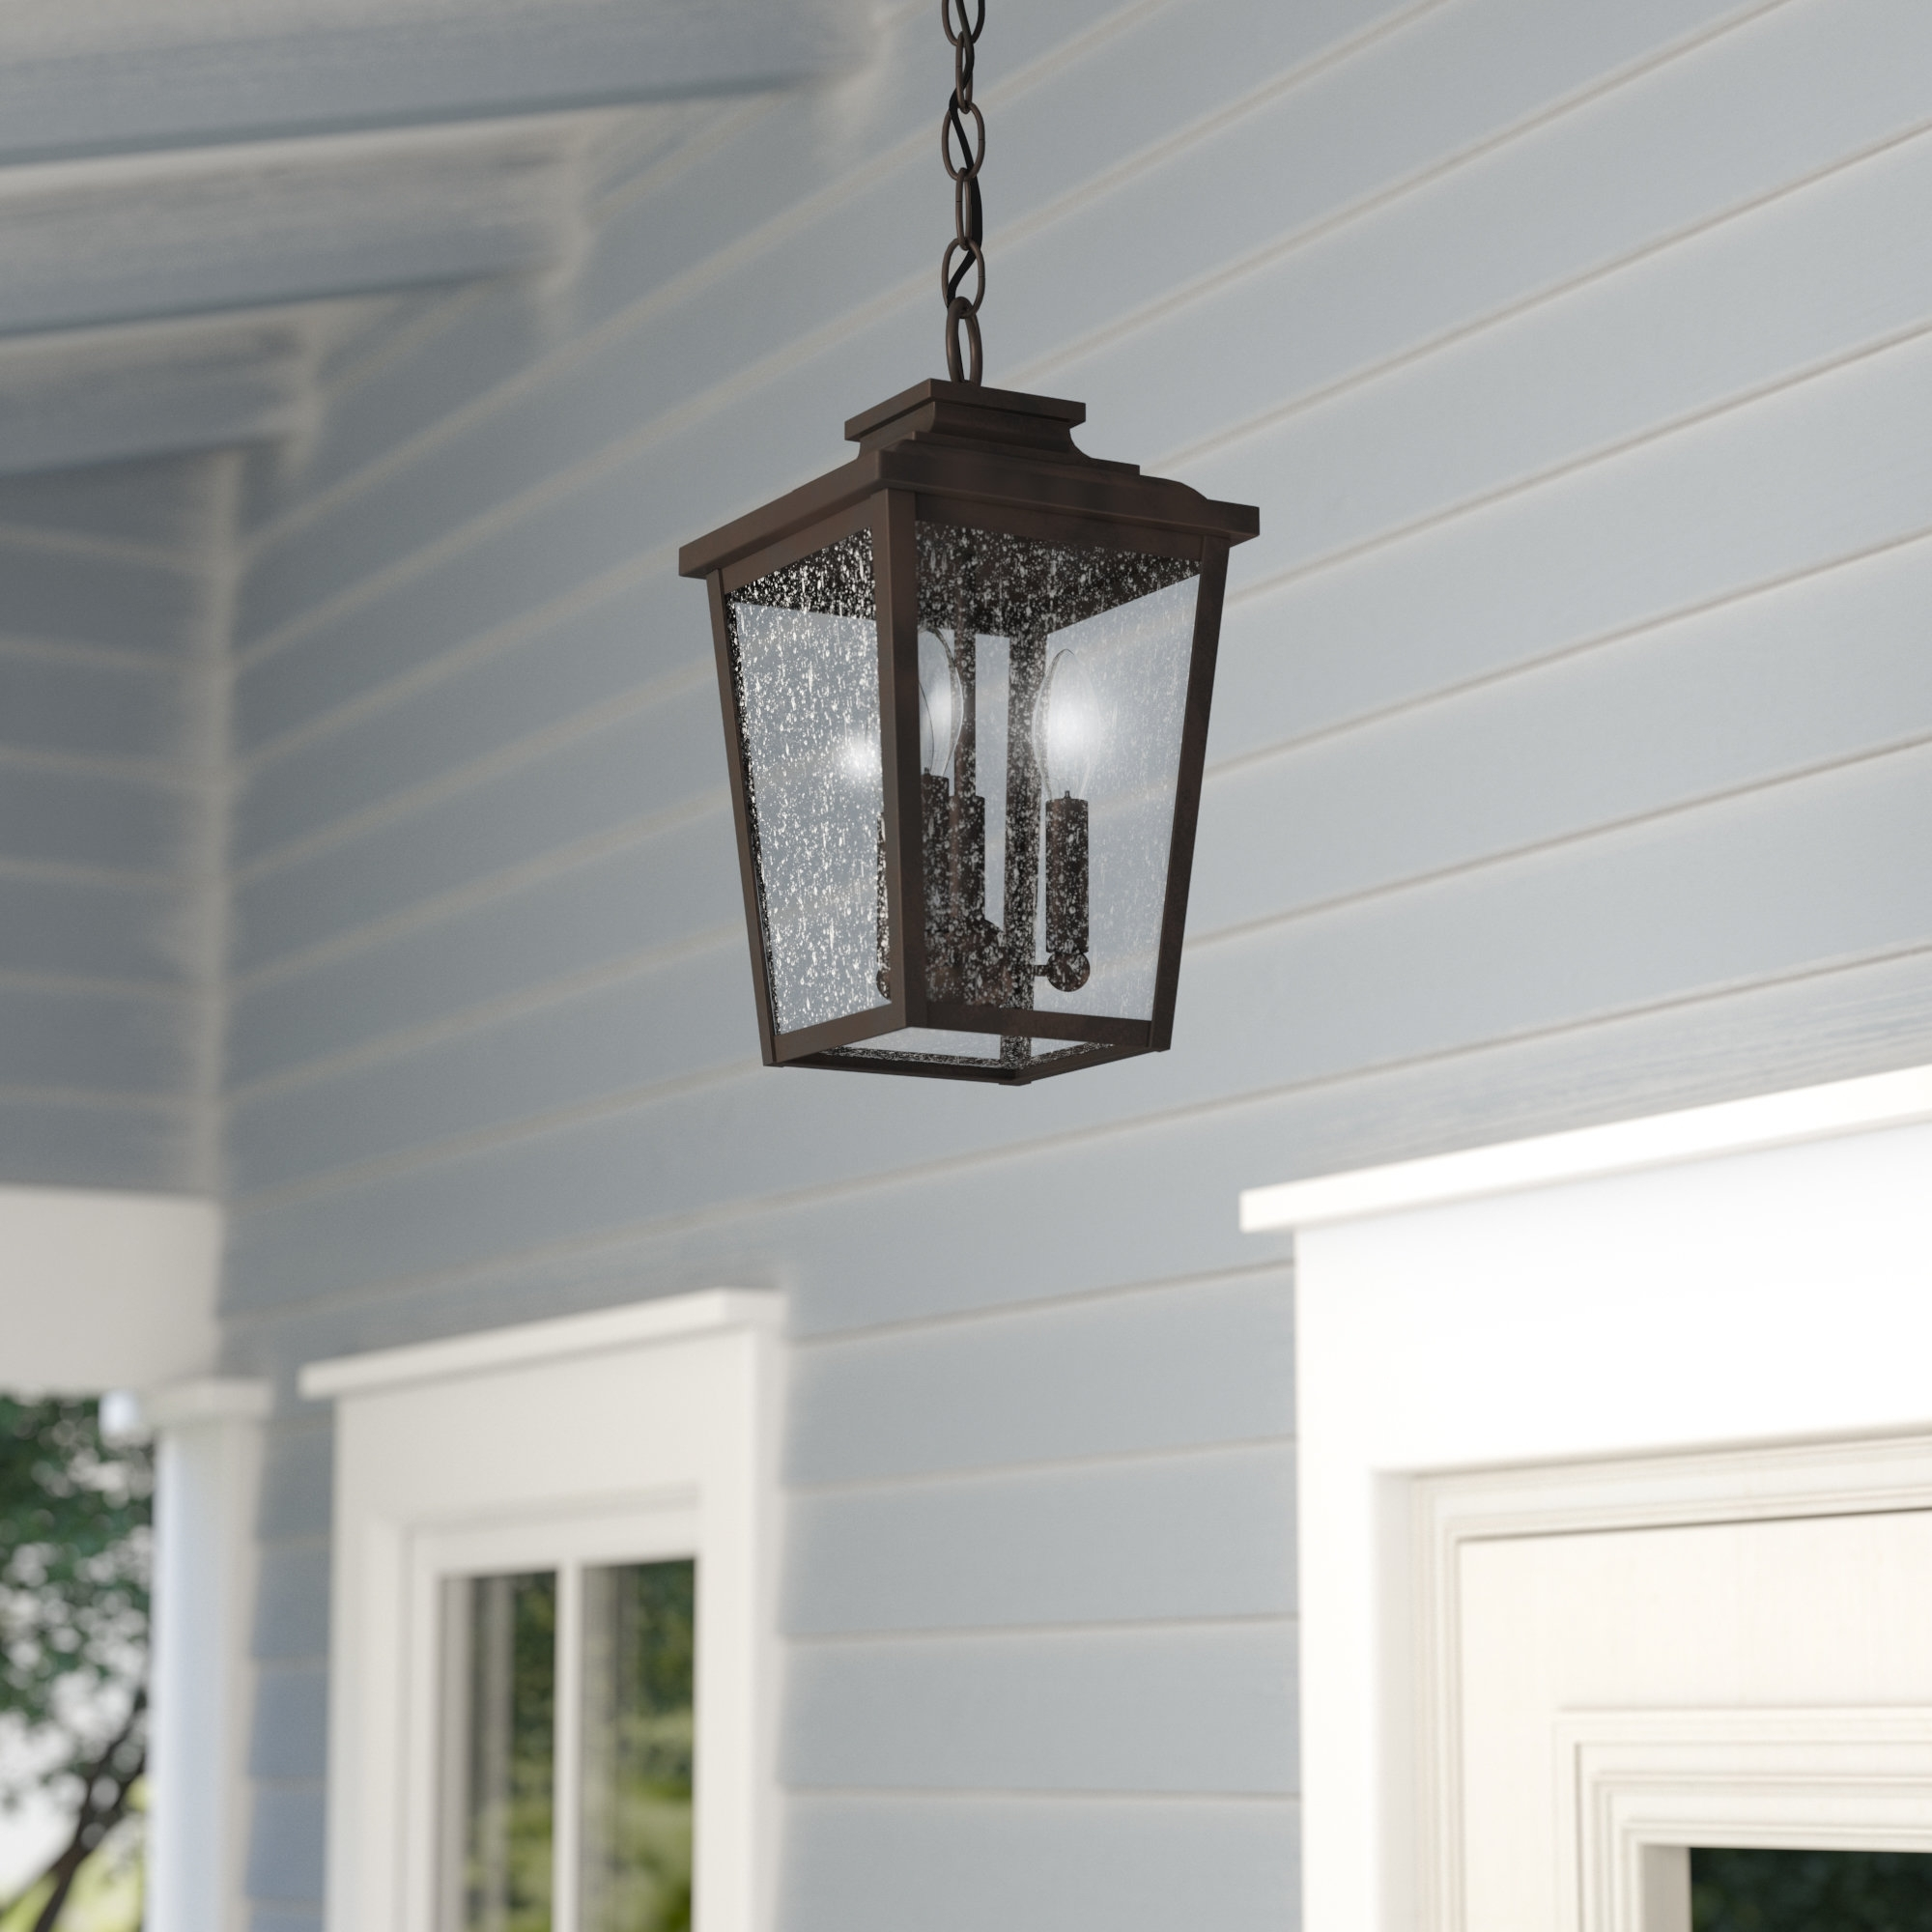 Outdoor Hanging Lights You'll Love | Wayfair Inside Outdoor Lanterns For Porch (View 17 of 20)